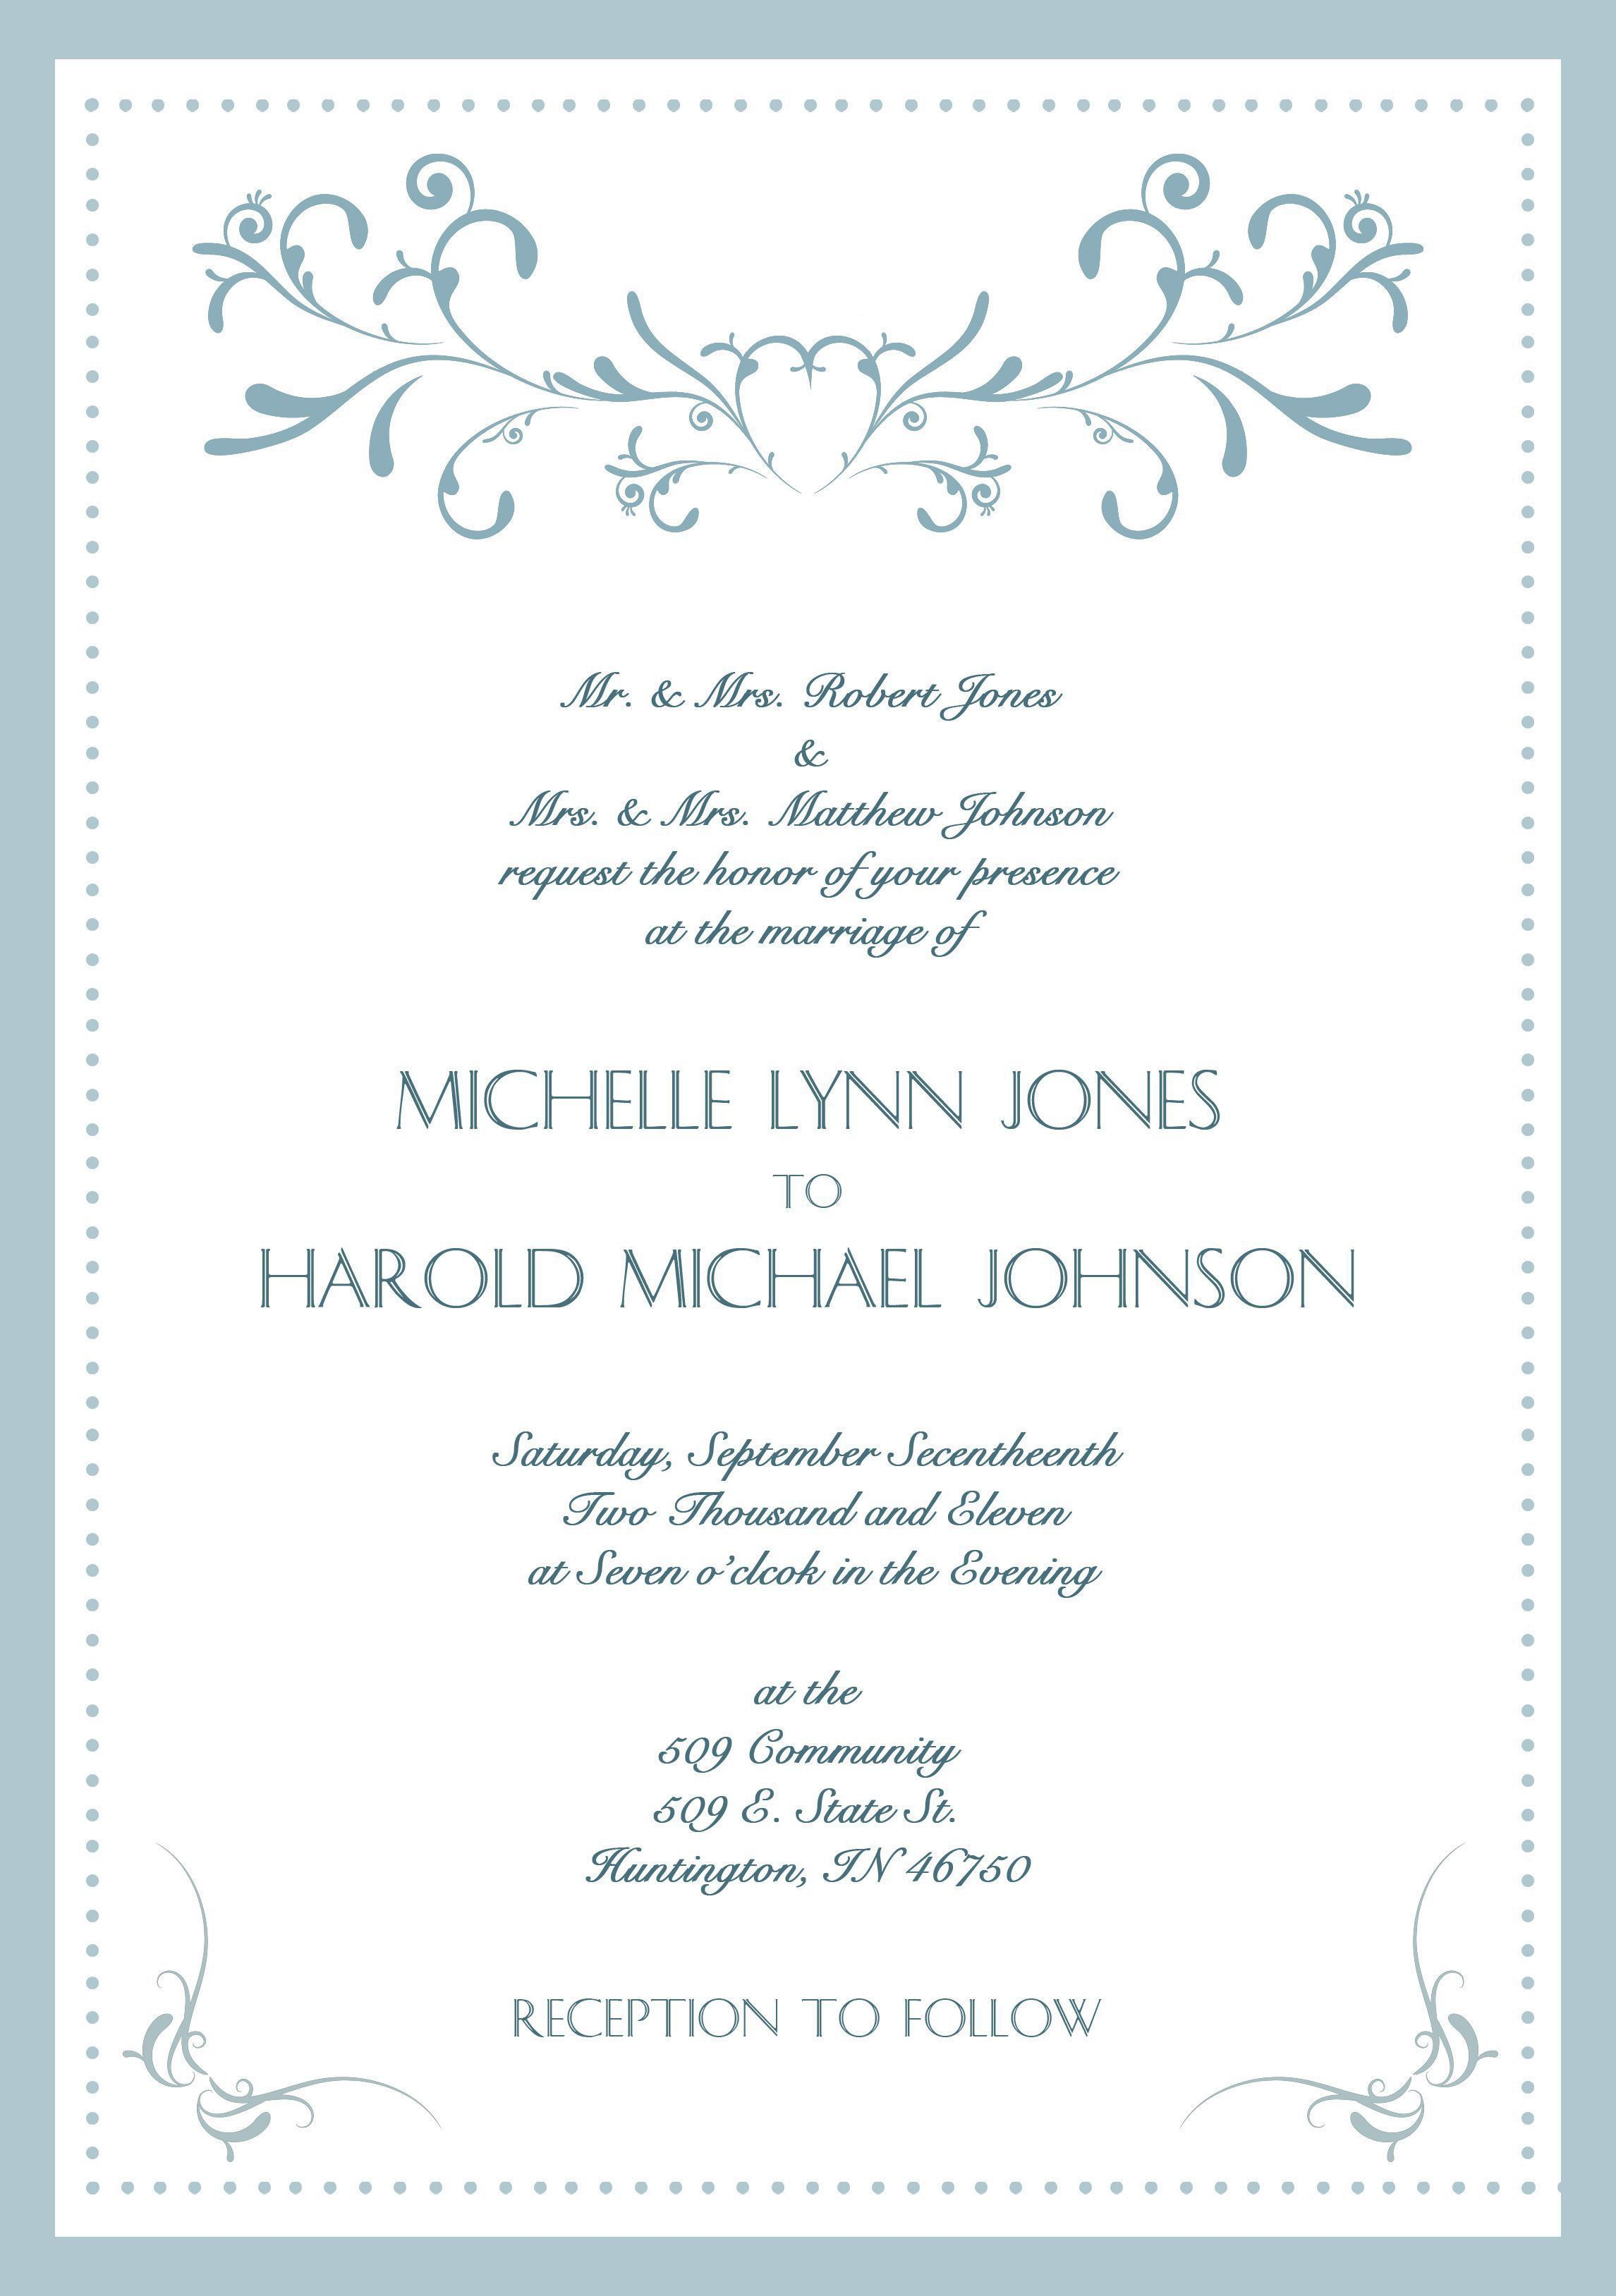 Sample Wedding Invitation Cards In English